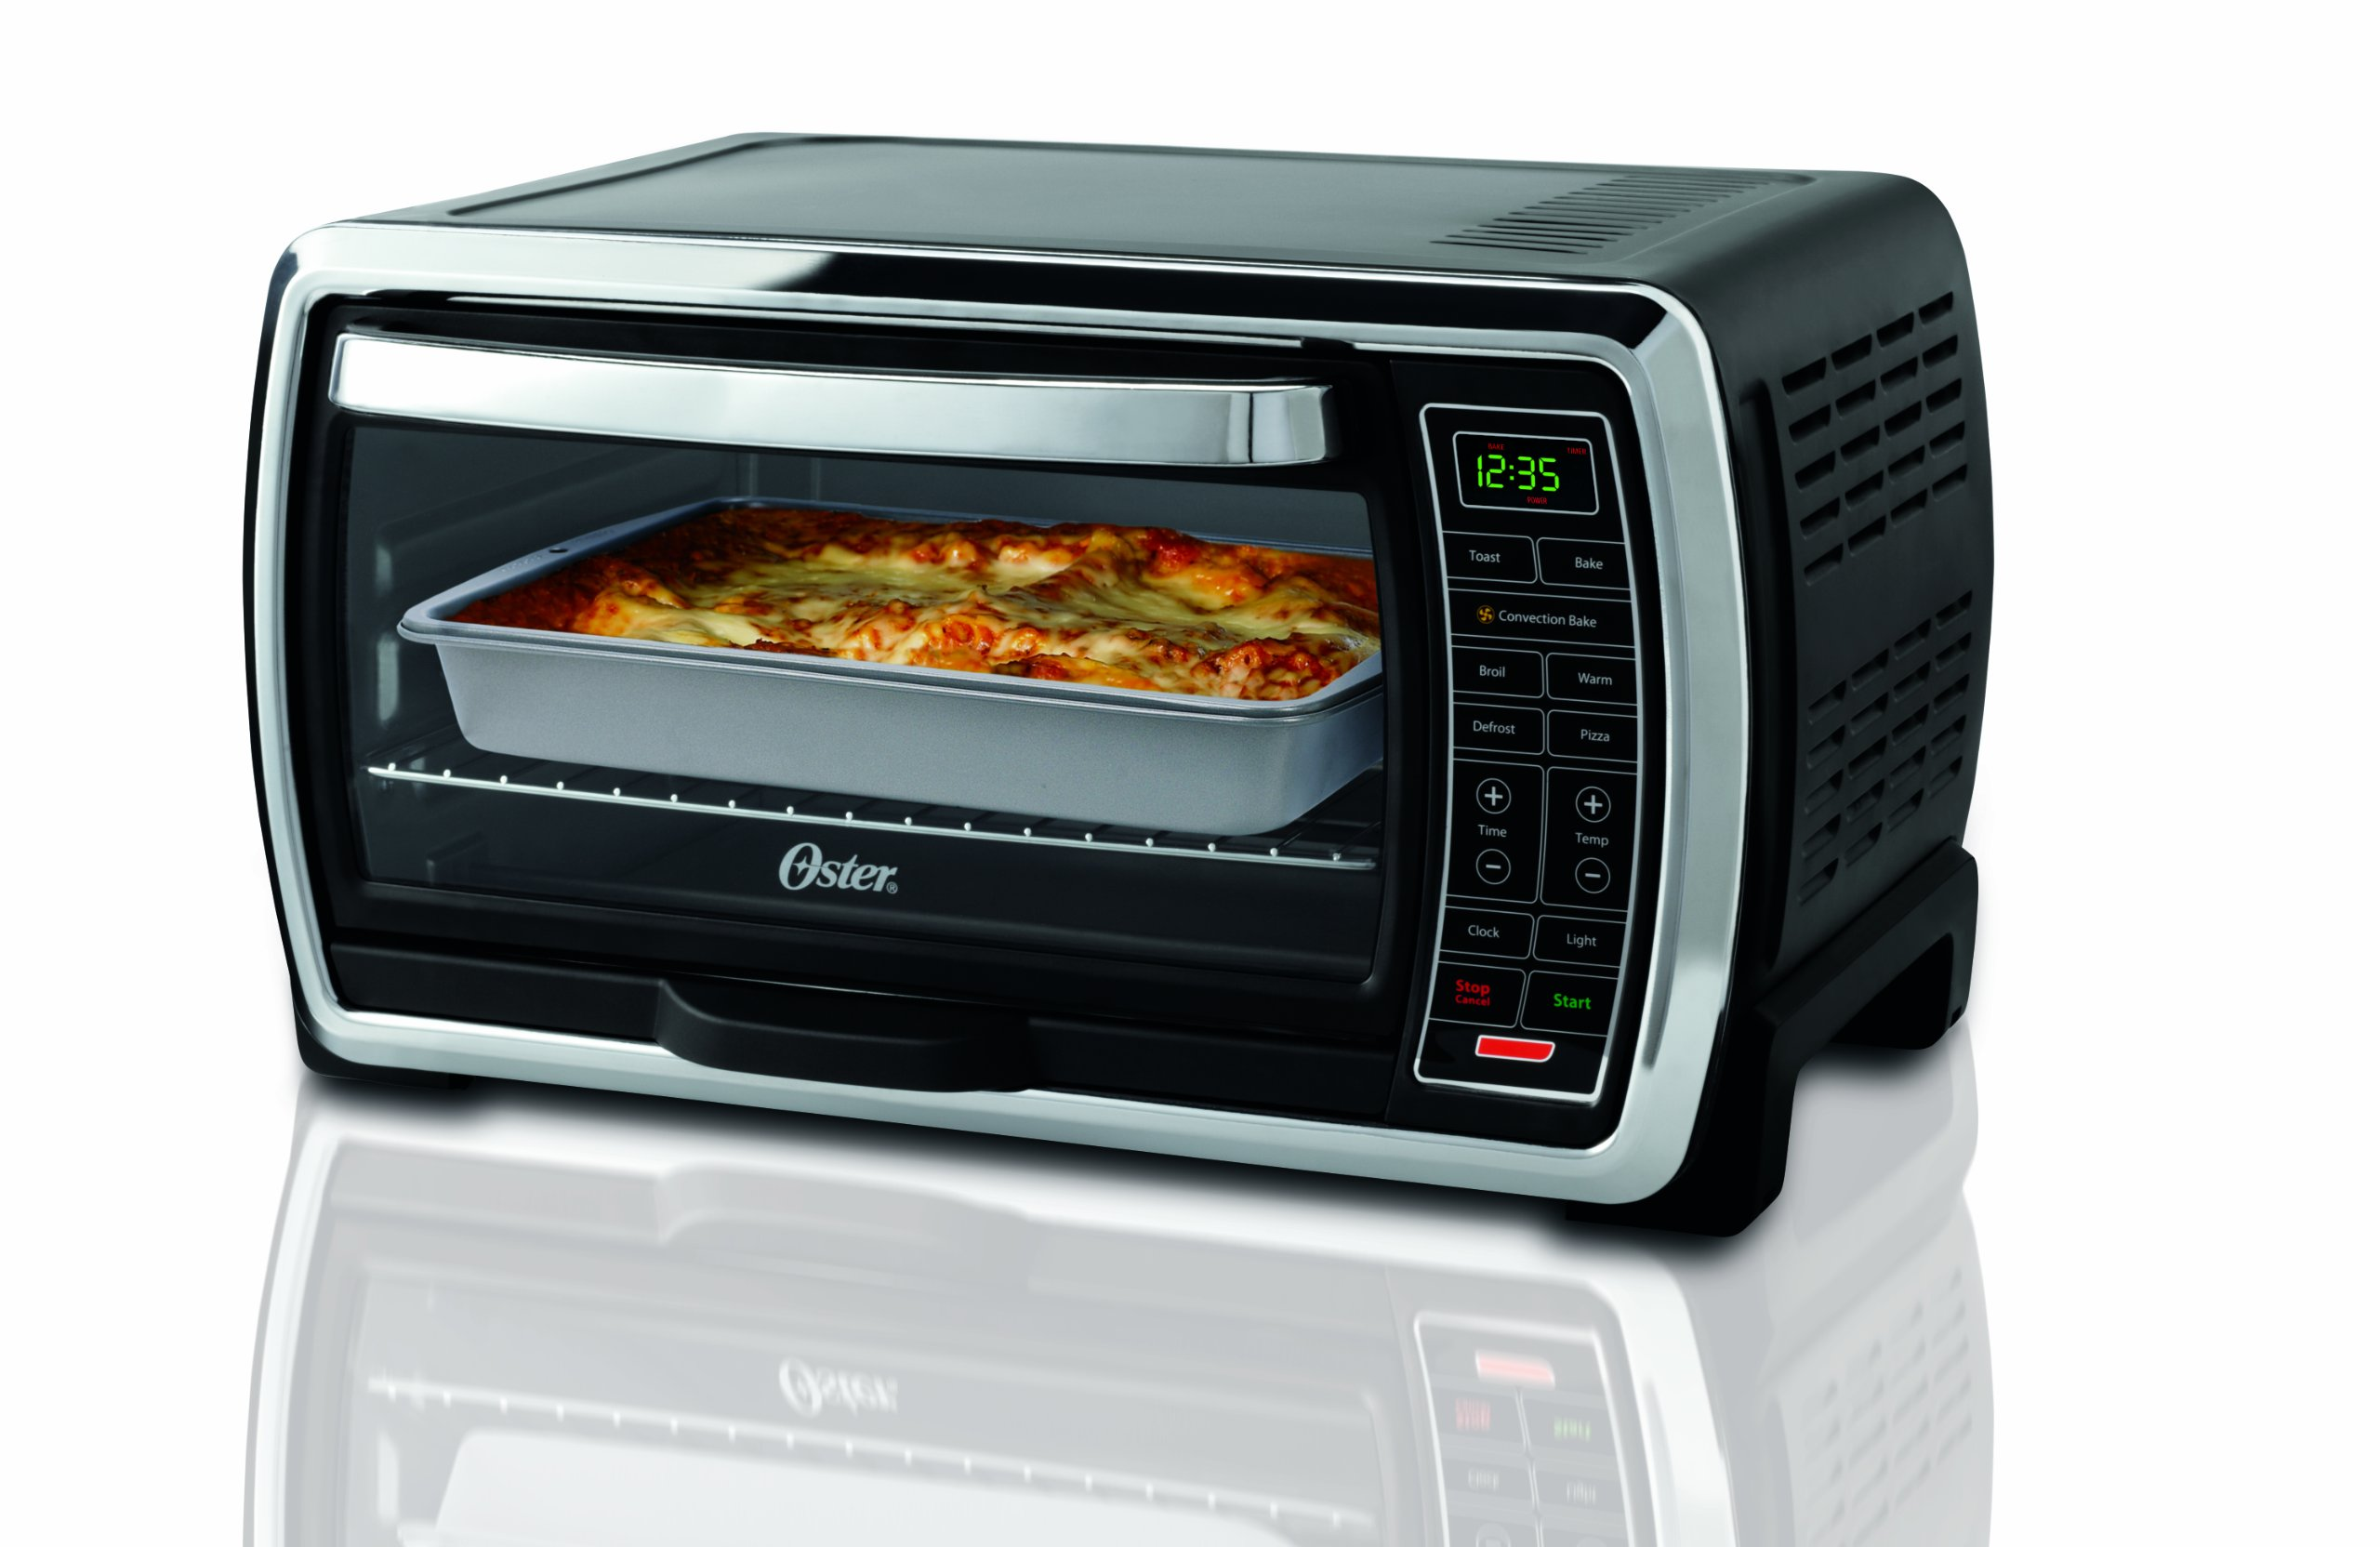 Large Capacity Countertop Convection Oven Food Network : Large Capacity Countertop 6-Slice Digital Convection Toaster Oven ...